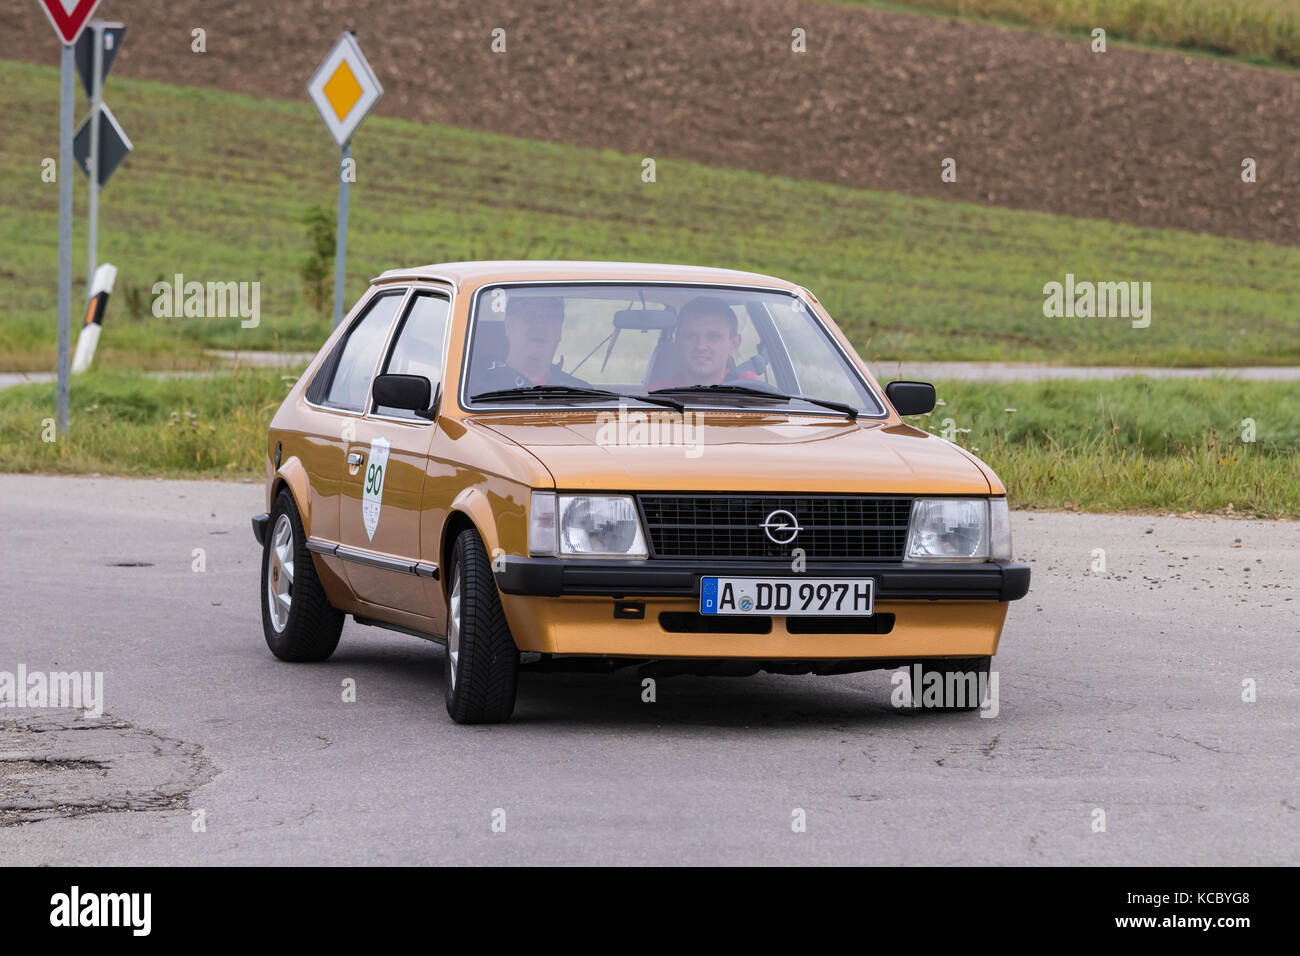 Augsburg Germany October 1 2017 Opel Kadett D Oldtimer Car At Stock Photo Alamy